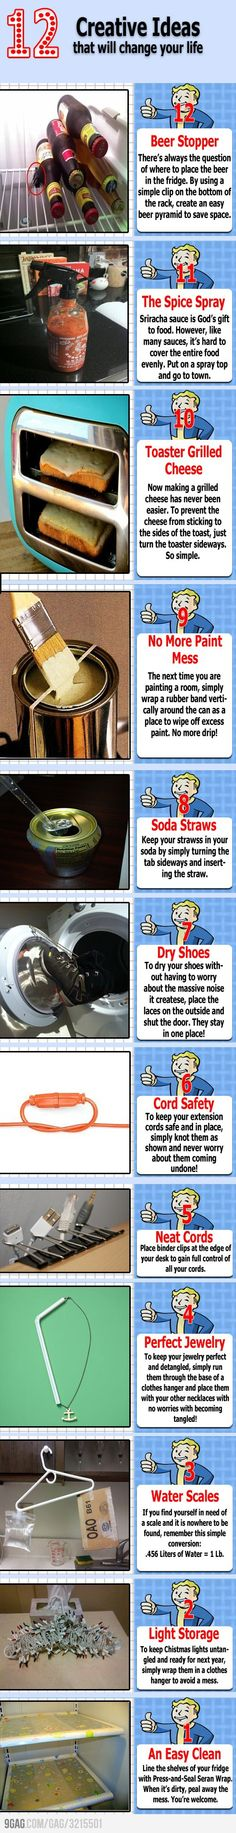 12 Creative Ideas that will change your life ;)